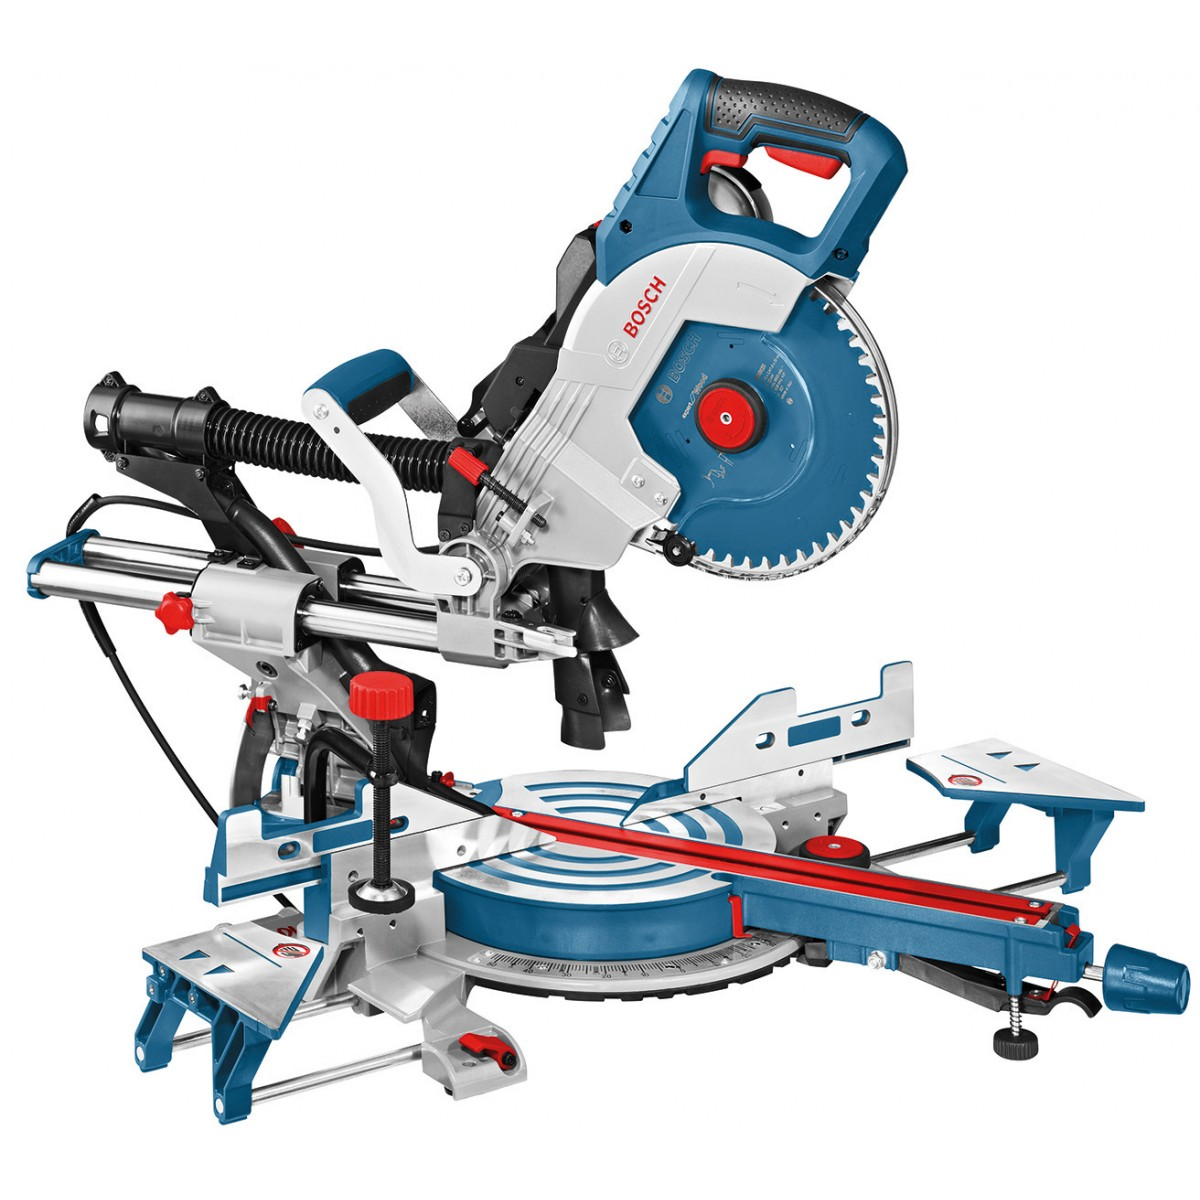 bosch gcm 8 sde 240v slide mitre saw 216mm blade howe tools uk. Black Bedroom Furniture Sets. Home Design Ideas